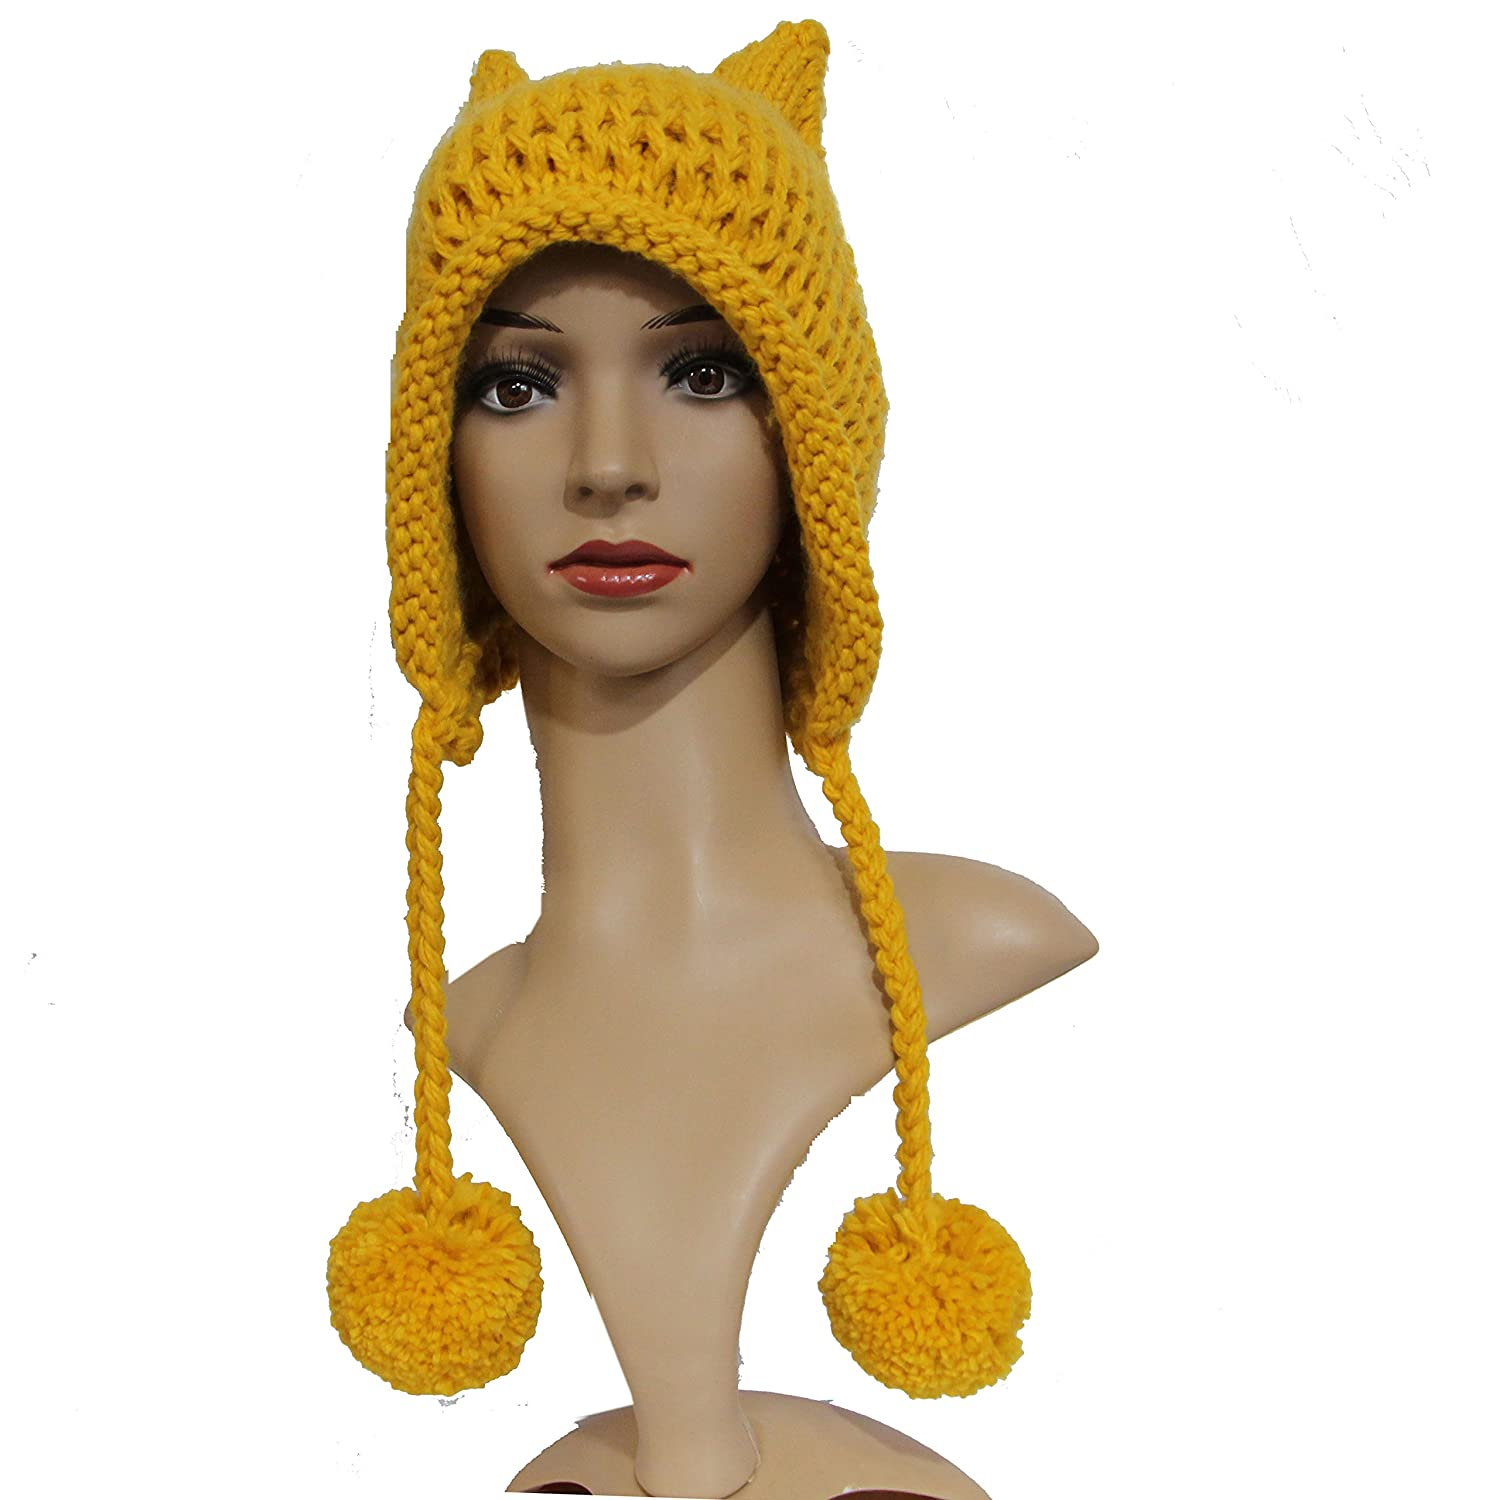 ALLDECOR Knitted Hat with Pom Pom Ear Cap Hot Pink Pussycat Beanie for Womens March